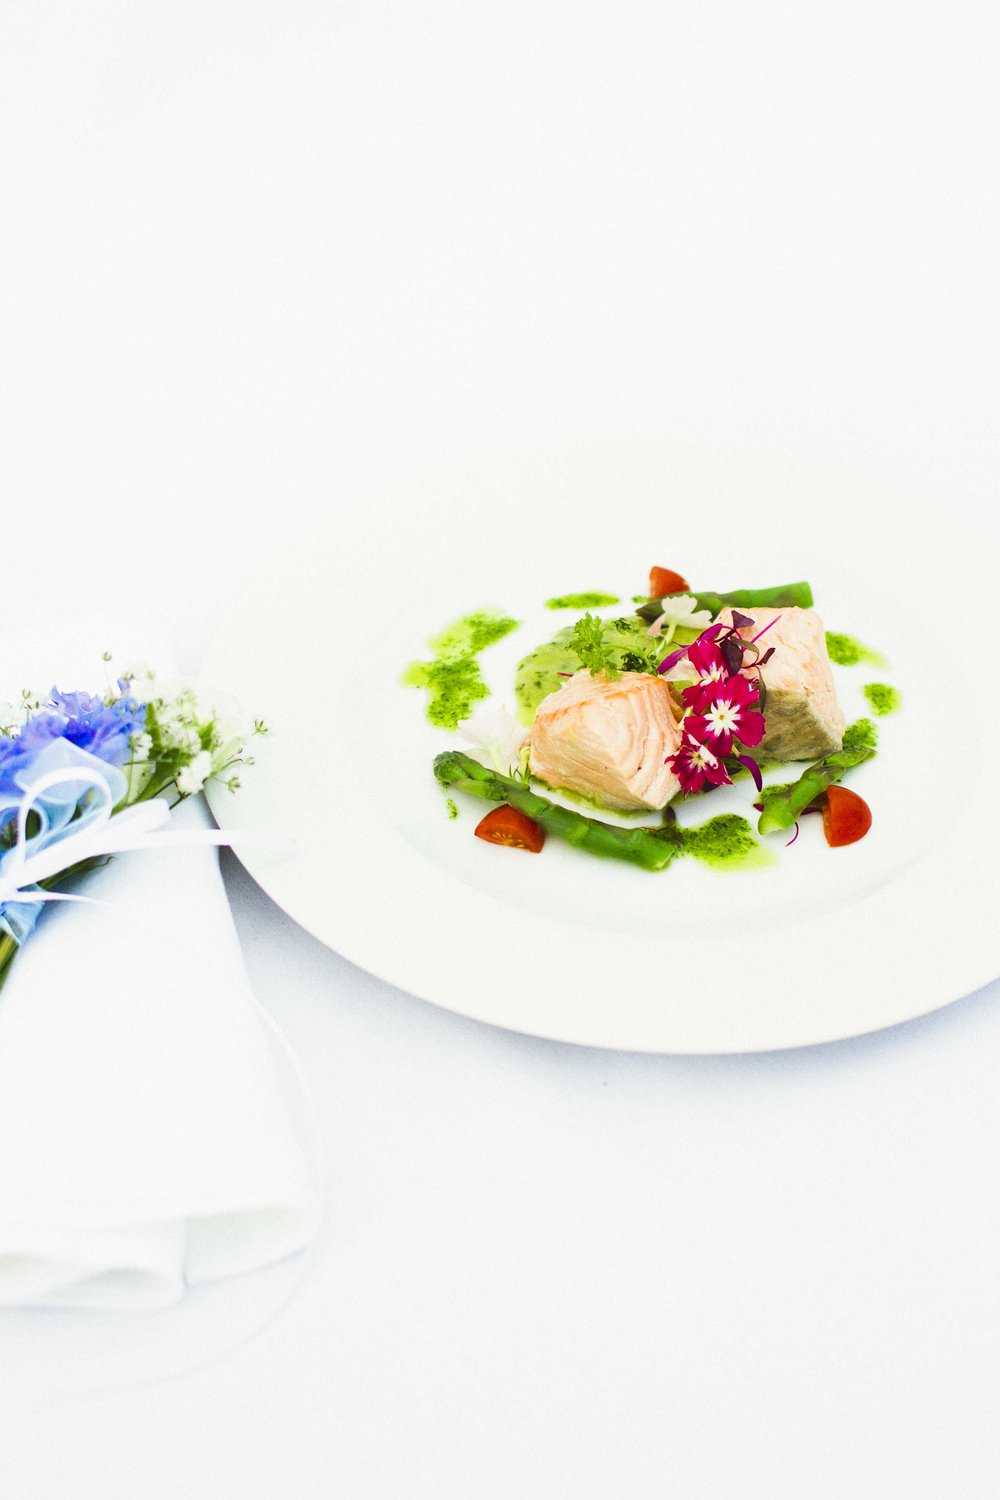 Catering inspiration - poached salmon with minted asparagus veloute and edible flowers